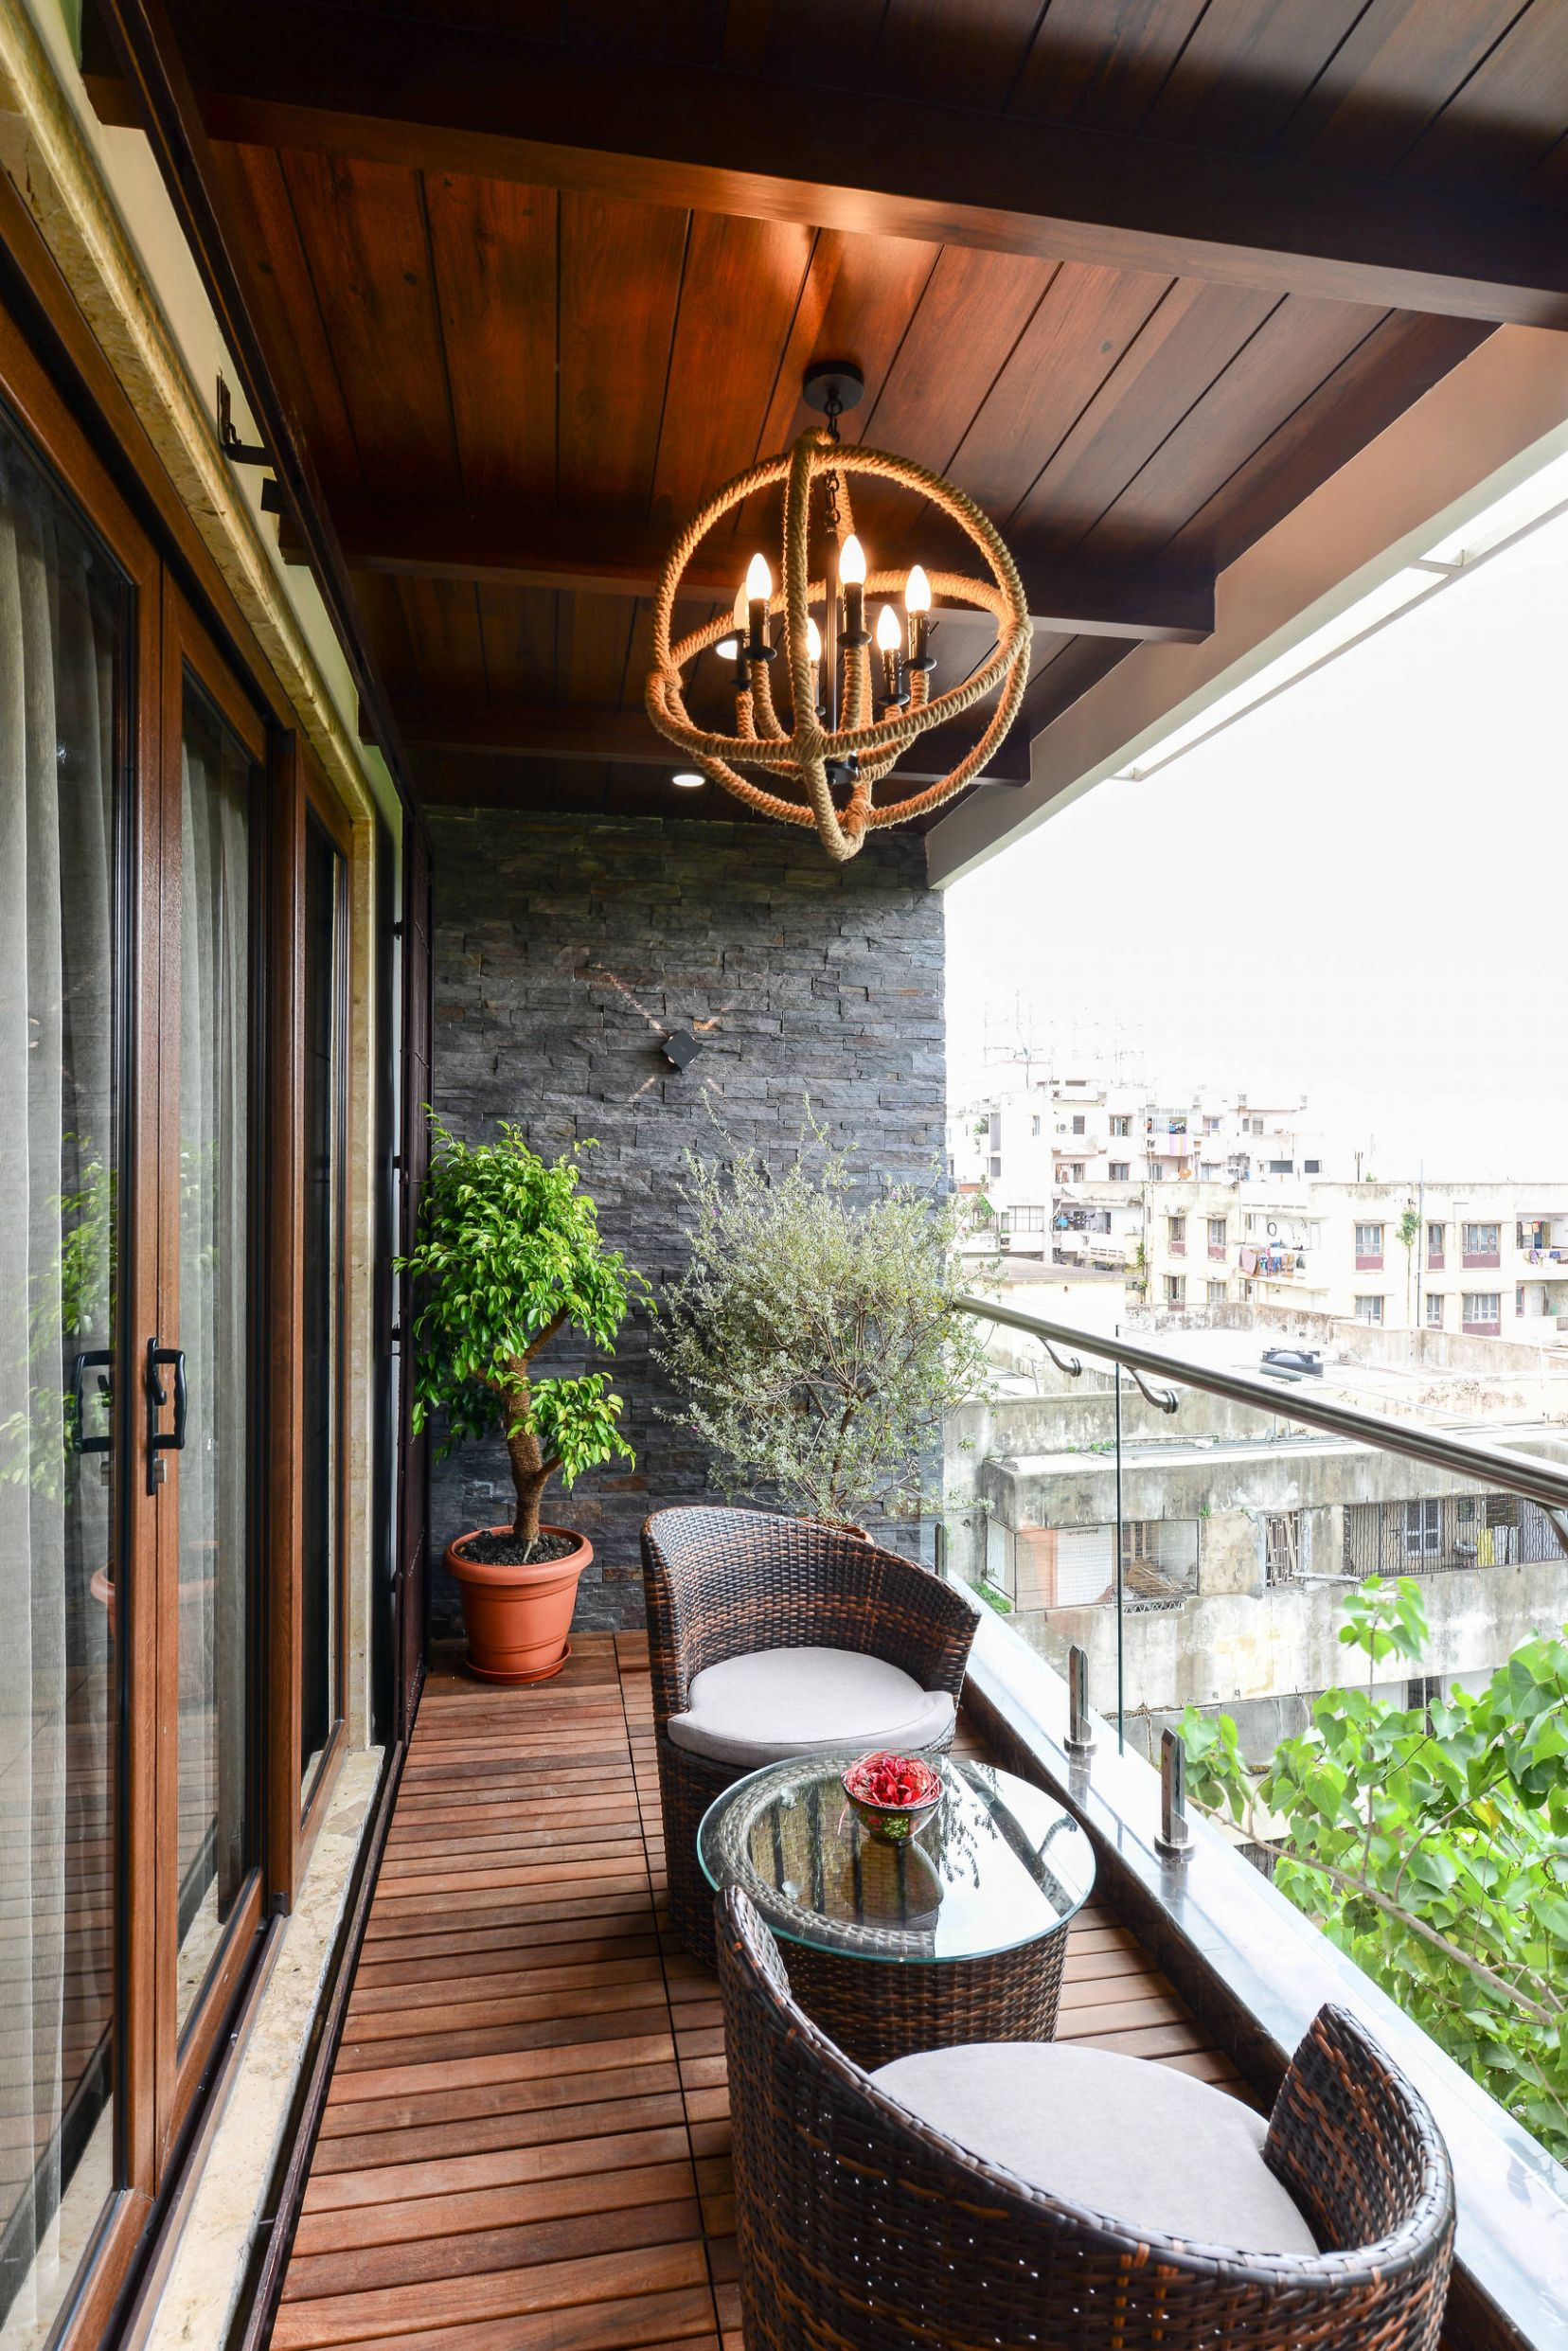 11 Beautiful Balcony Pictures & Ideas | Houzz